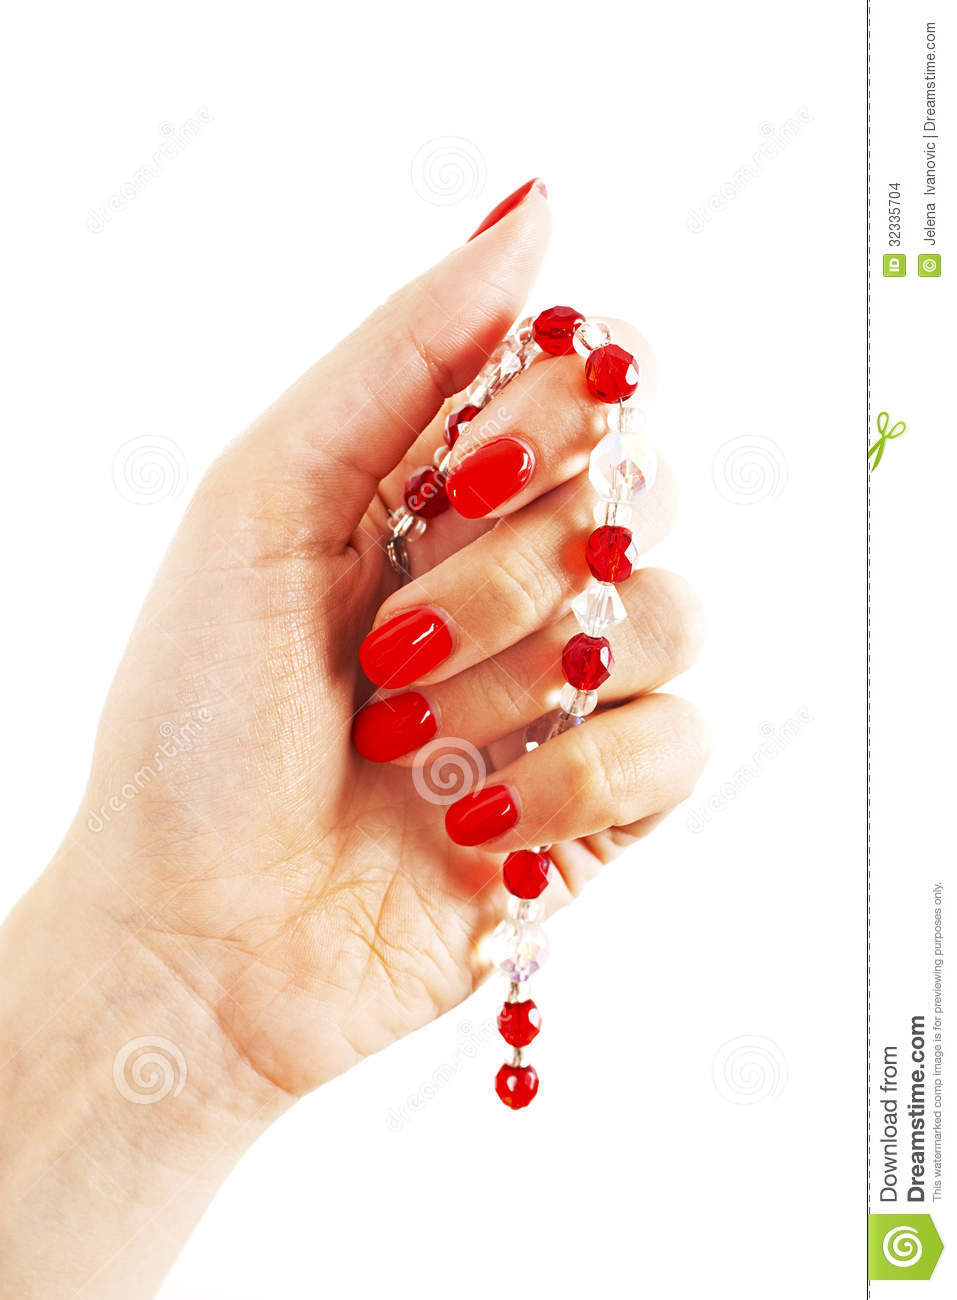 Beautiful Hand Of A Woman With Red Manicure Holding Red Pearl Necklace